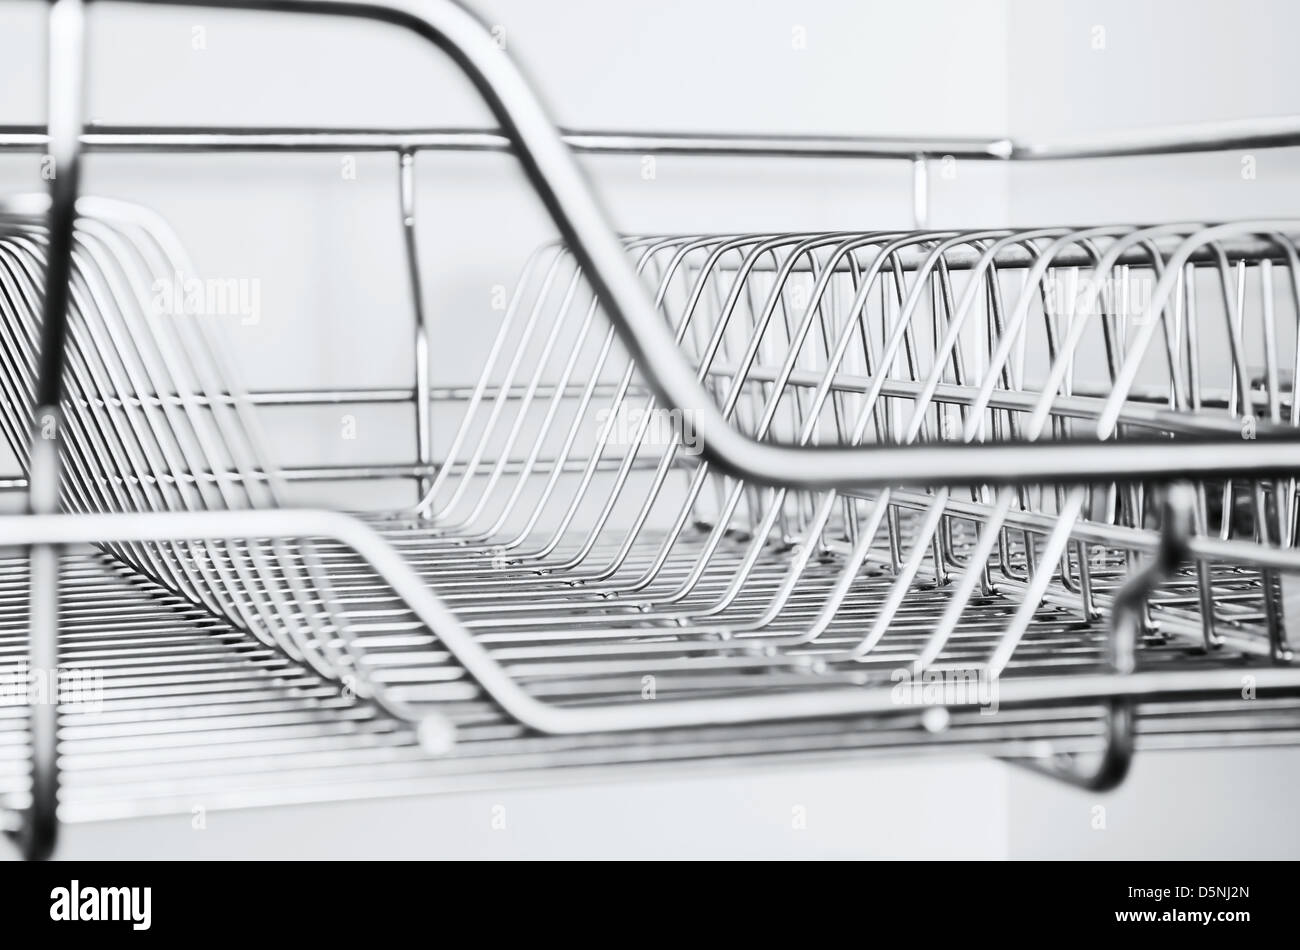 Close-up of stainless steel dish rack inside kitchen cabinet Stock ...